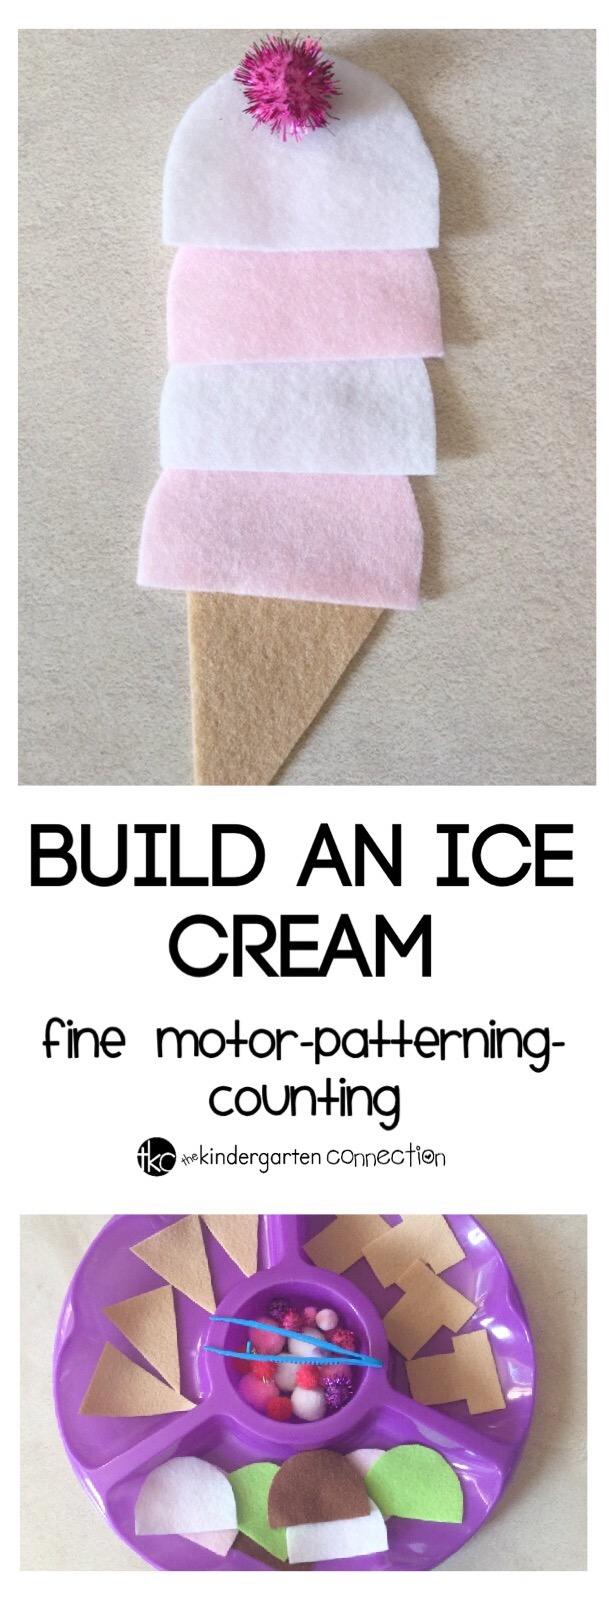 This build an ice cream activity is a great way to build patterning skills, counting, beginning addition and more in a fun, hands on way!